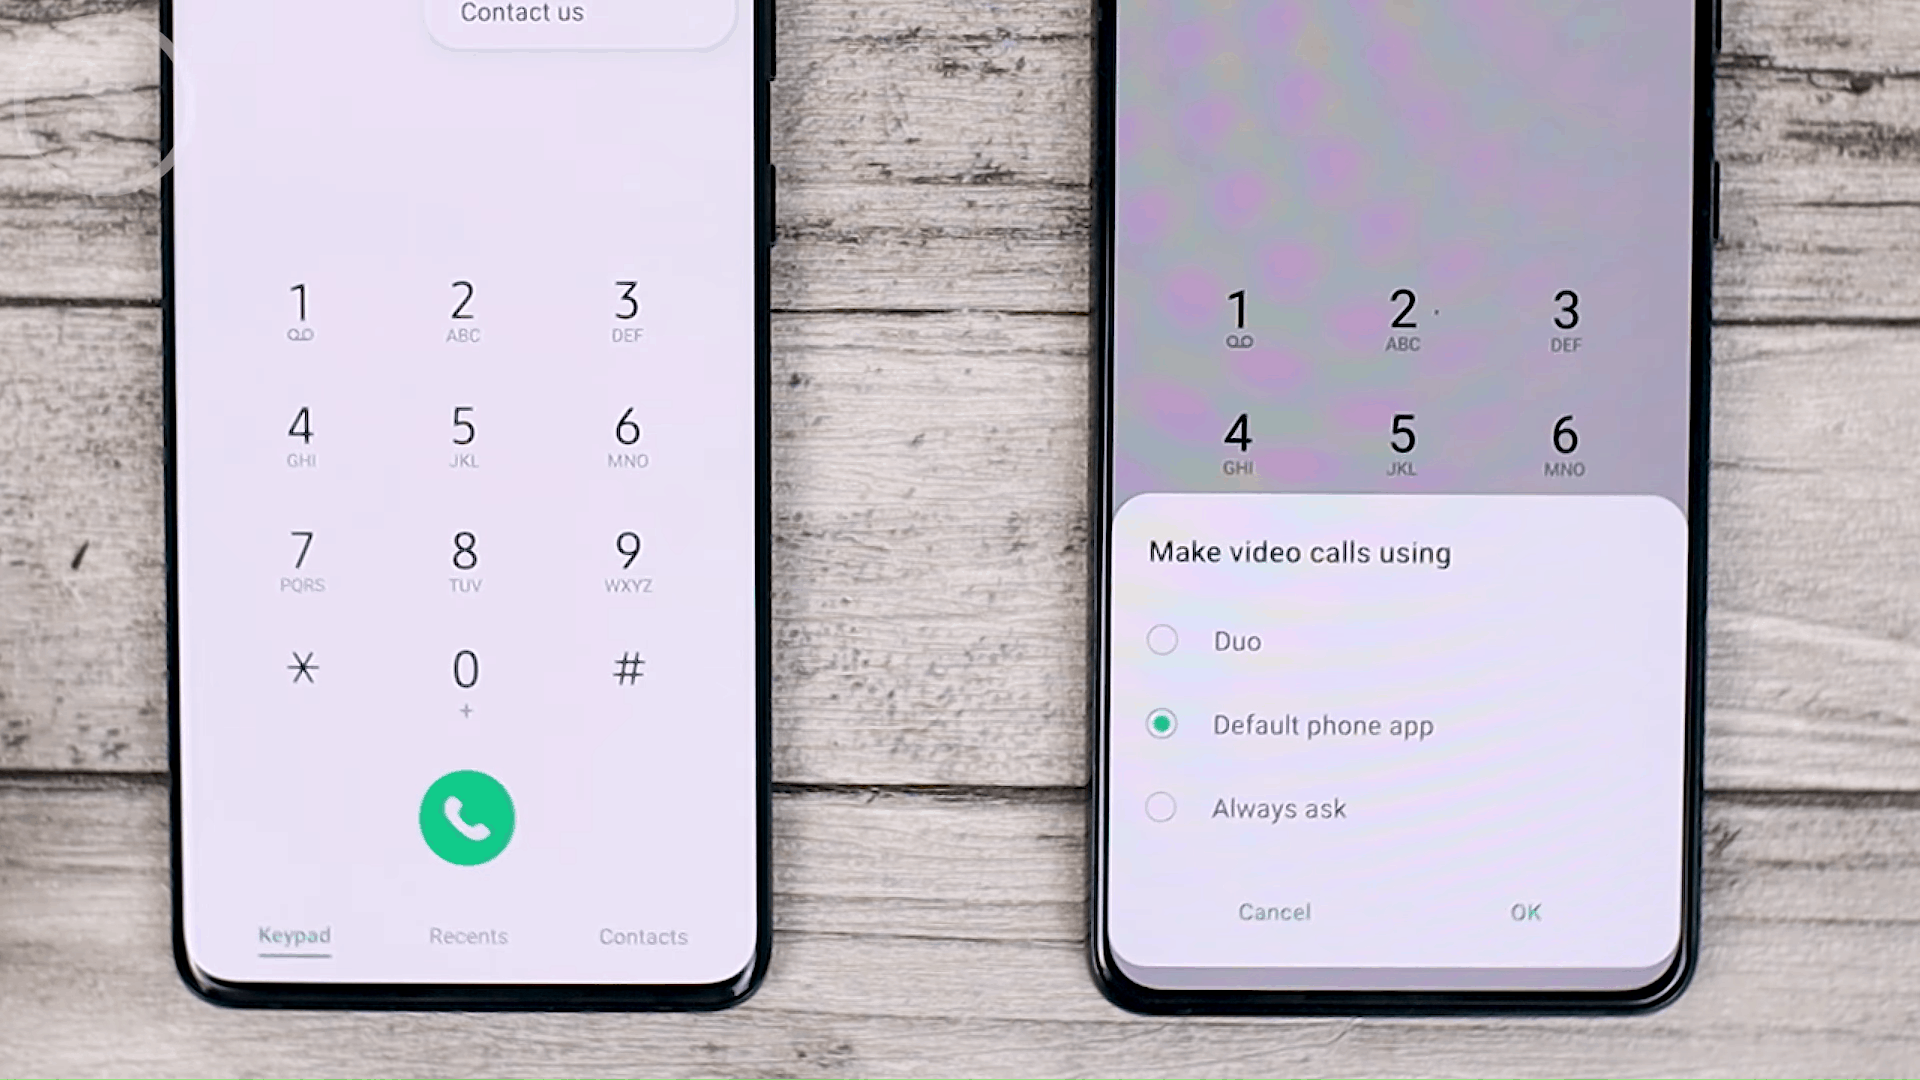 Phone Dial - Check out the latest One UI 3.1 features on the Samsung S21 + that are not yet available on One UI 3.0 Samsung S20 + (PART 2)